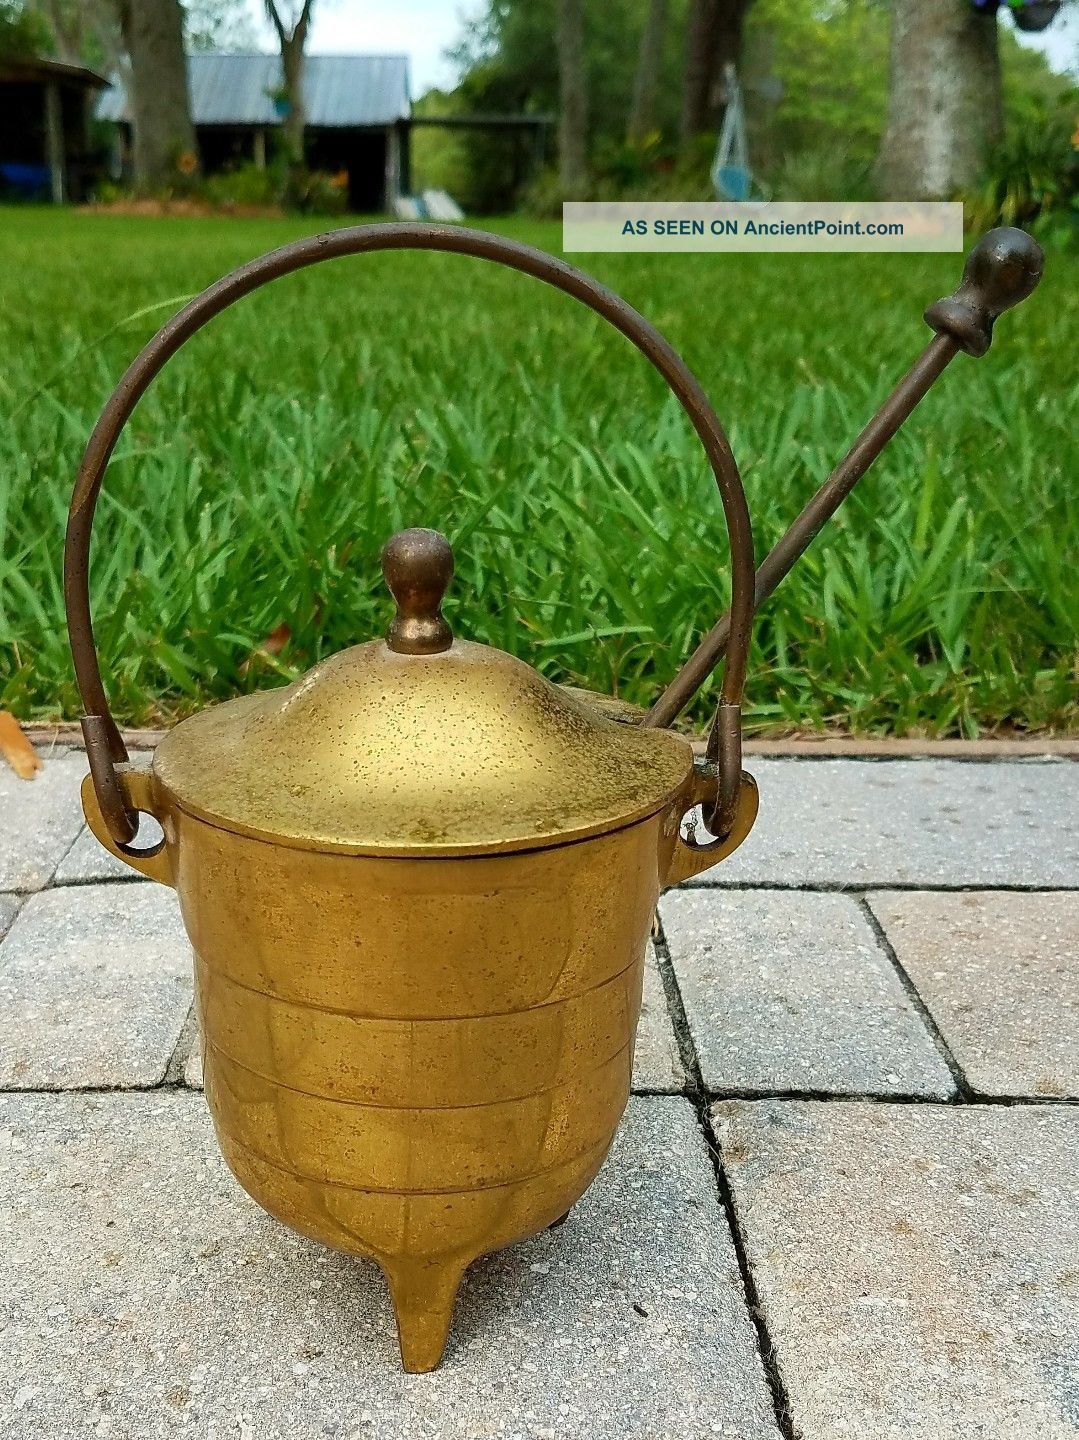 Smudge Pot Smelting Cauldron Kettle Fire Starter Pumice Wand Solid Brass Vintage Hearth Ware photo